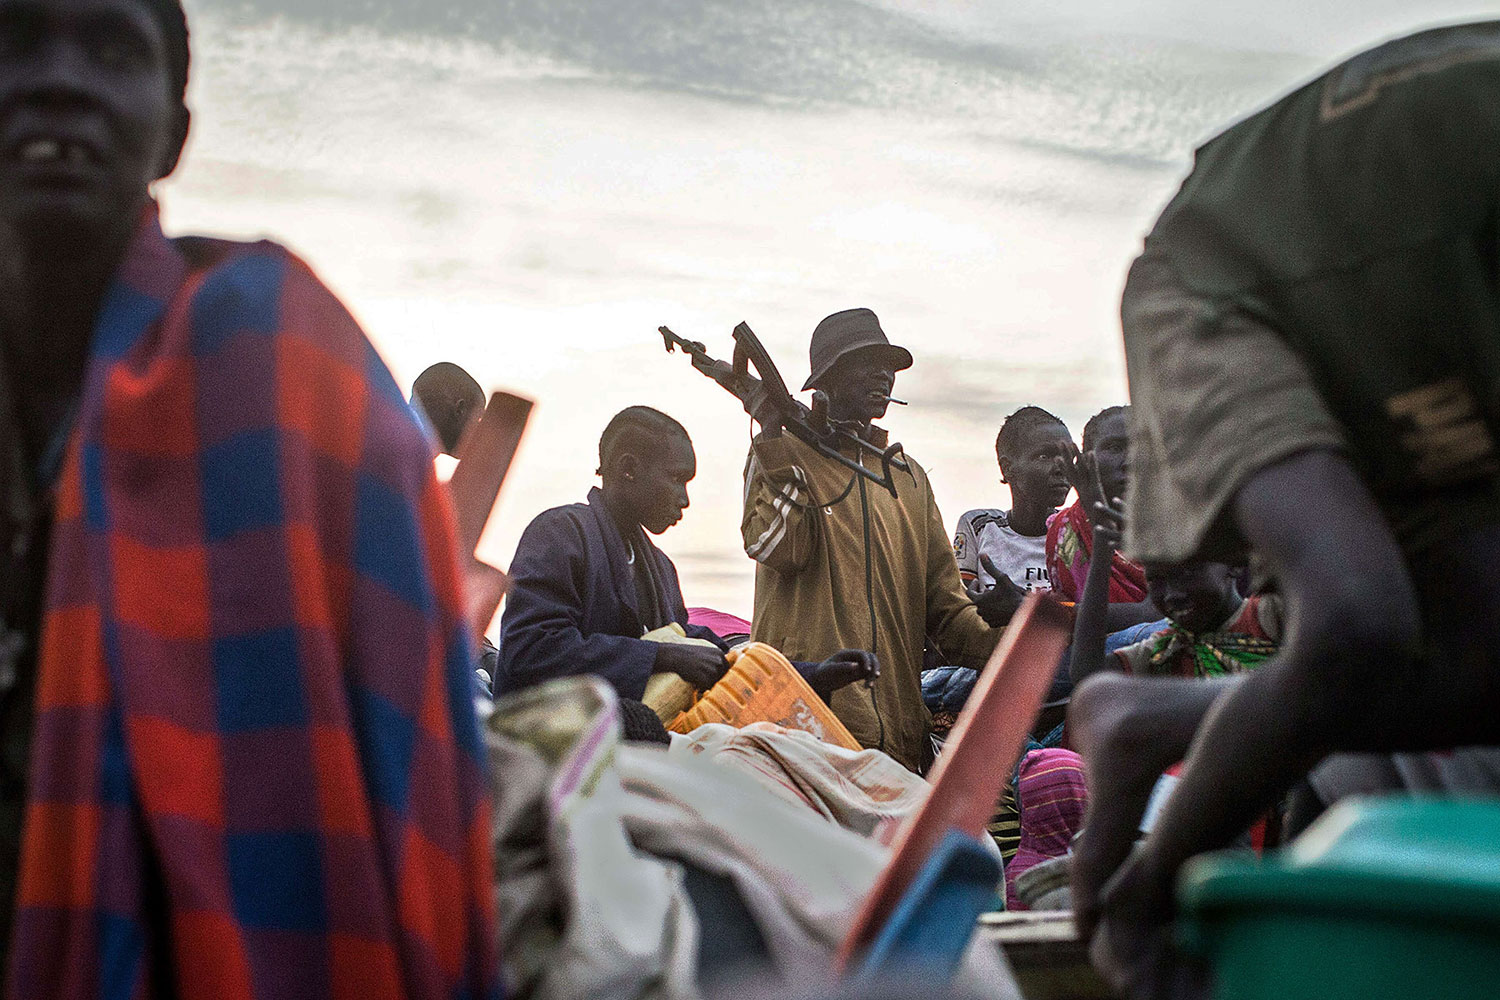 People arrive to Minkammen, South Sudan on Jan. 9, 2014 having crossed over the Nile River by night.